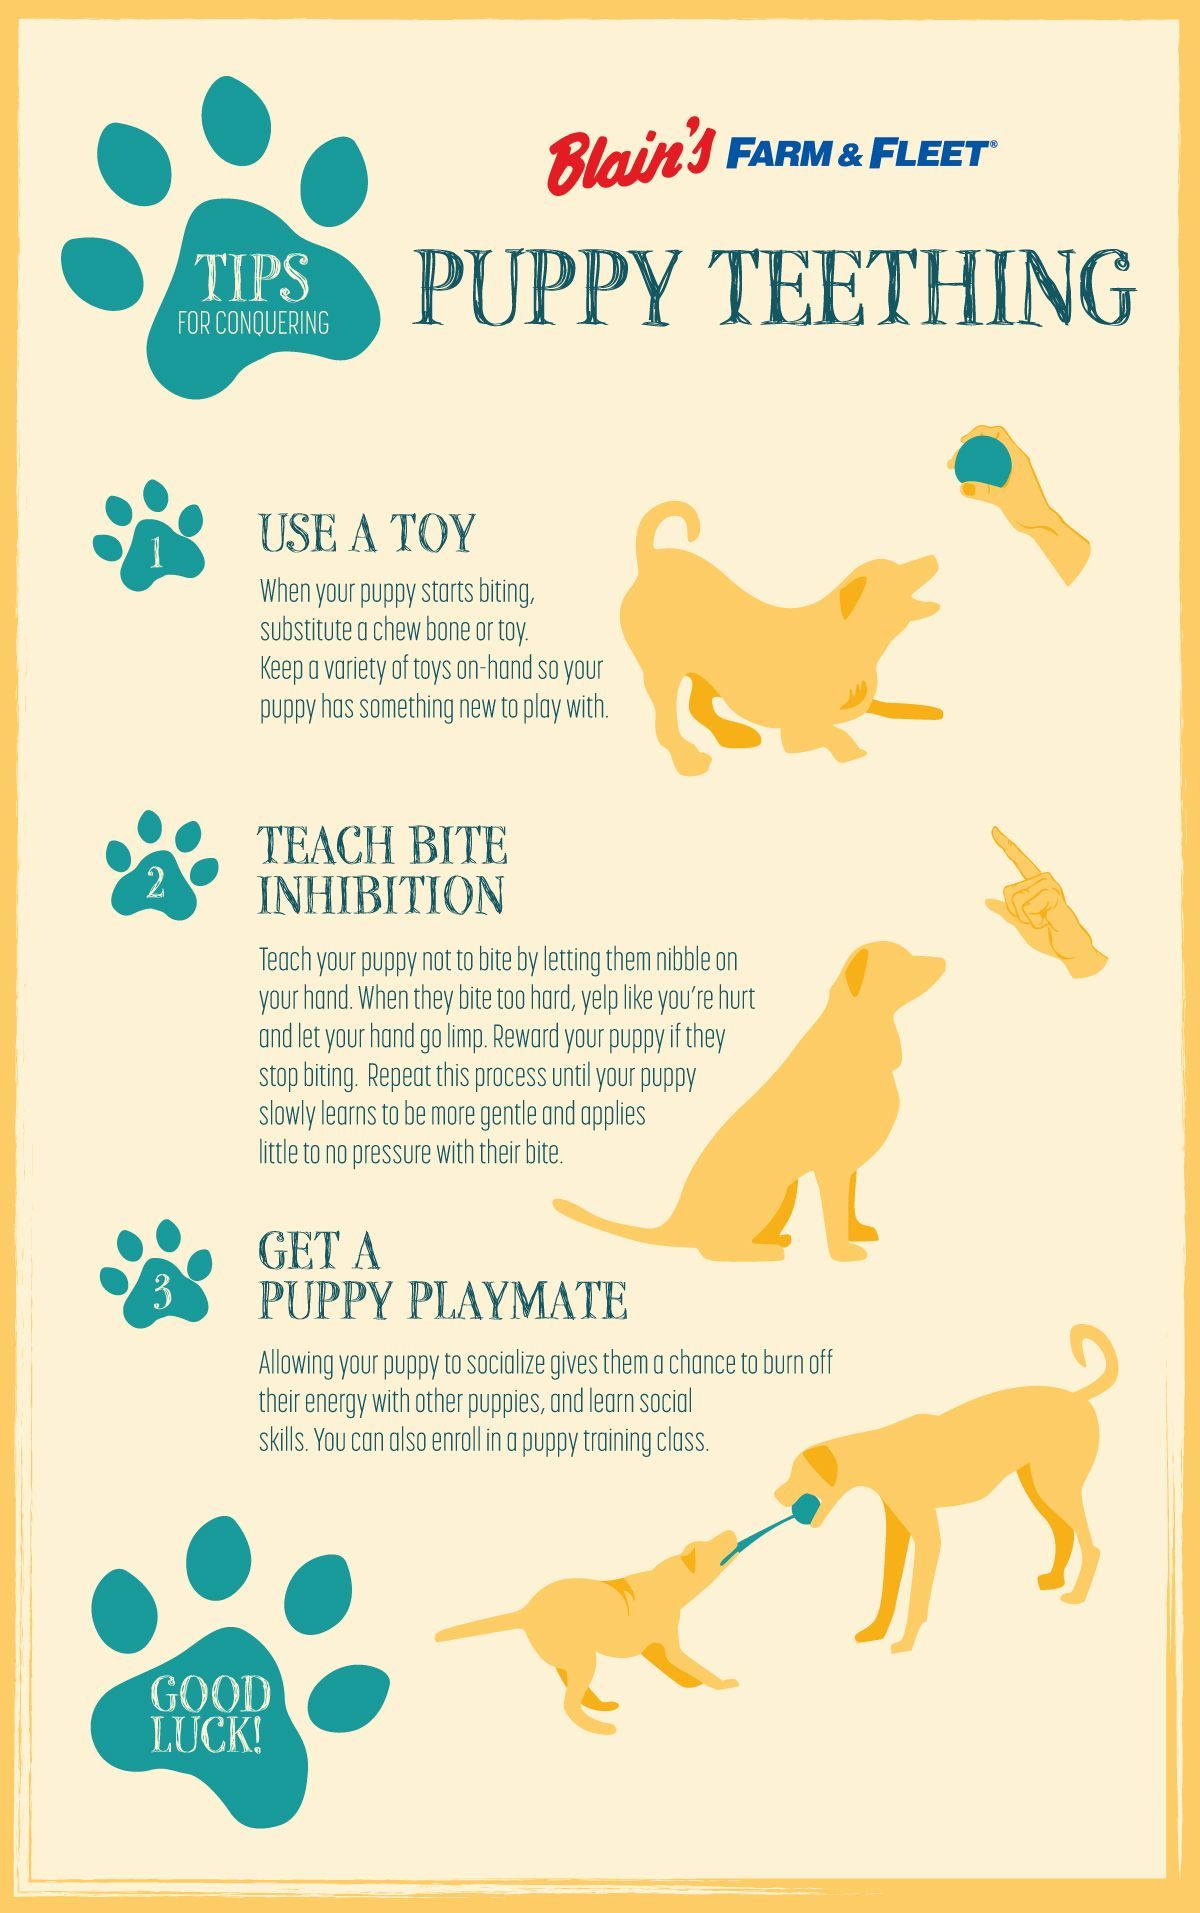 Is Your New Puppy Teething Help Her Feel Better And Keep Your Shoes From Becoming Chew Toys With These Tips Puppy Teething Puppy Training Puppy Training Tips